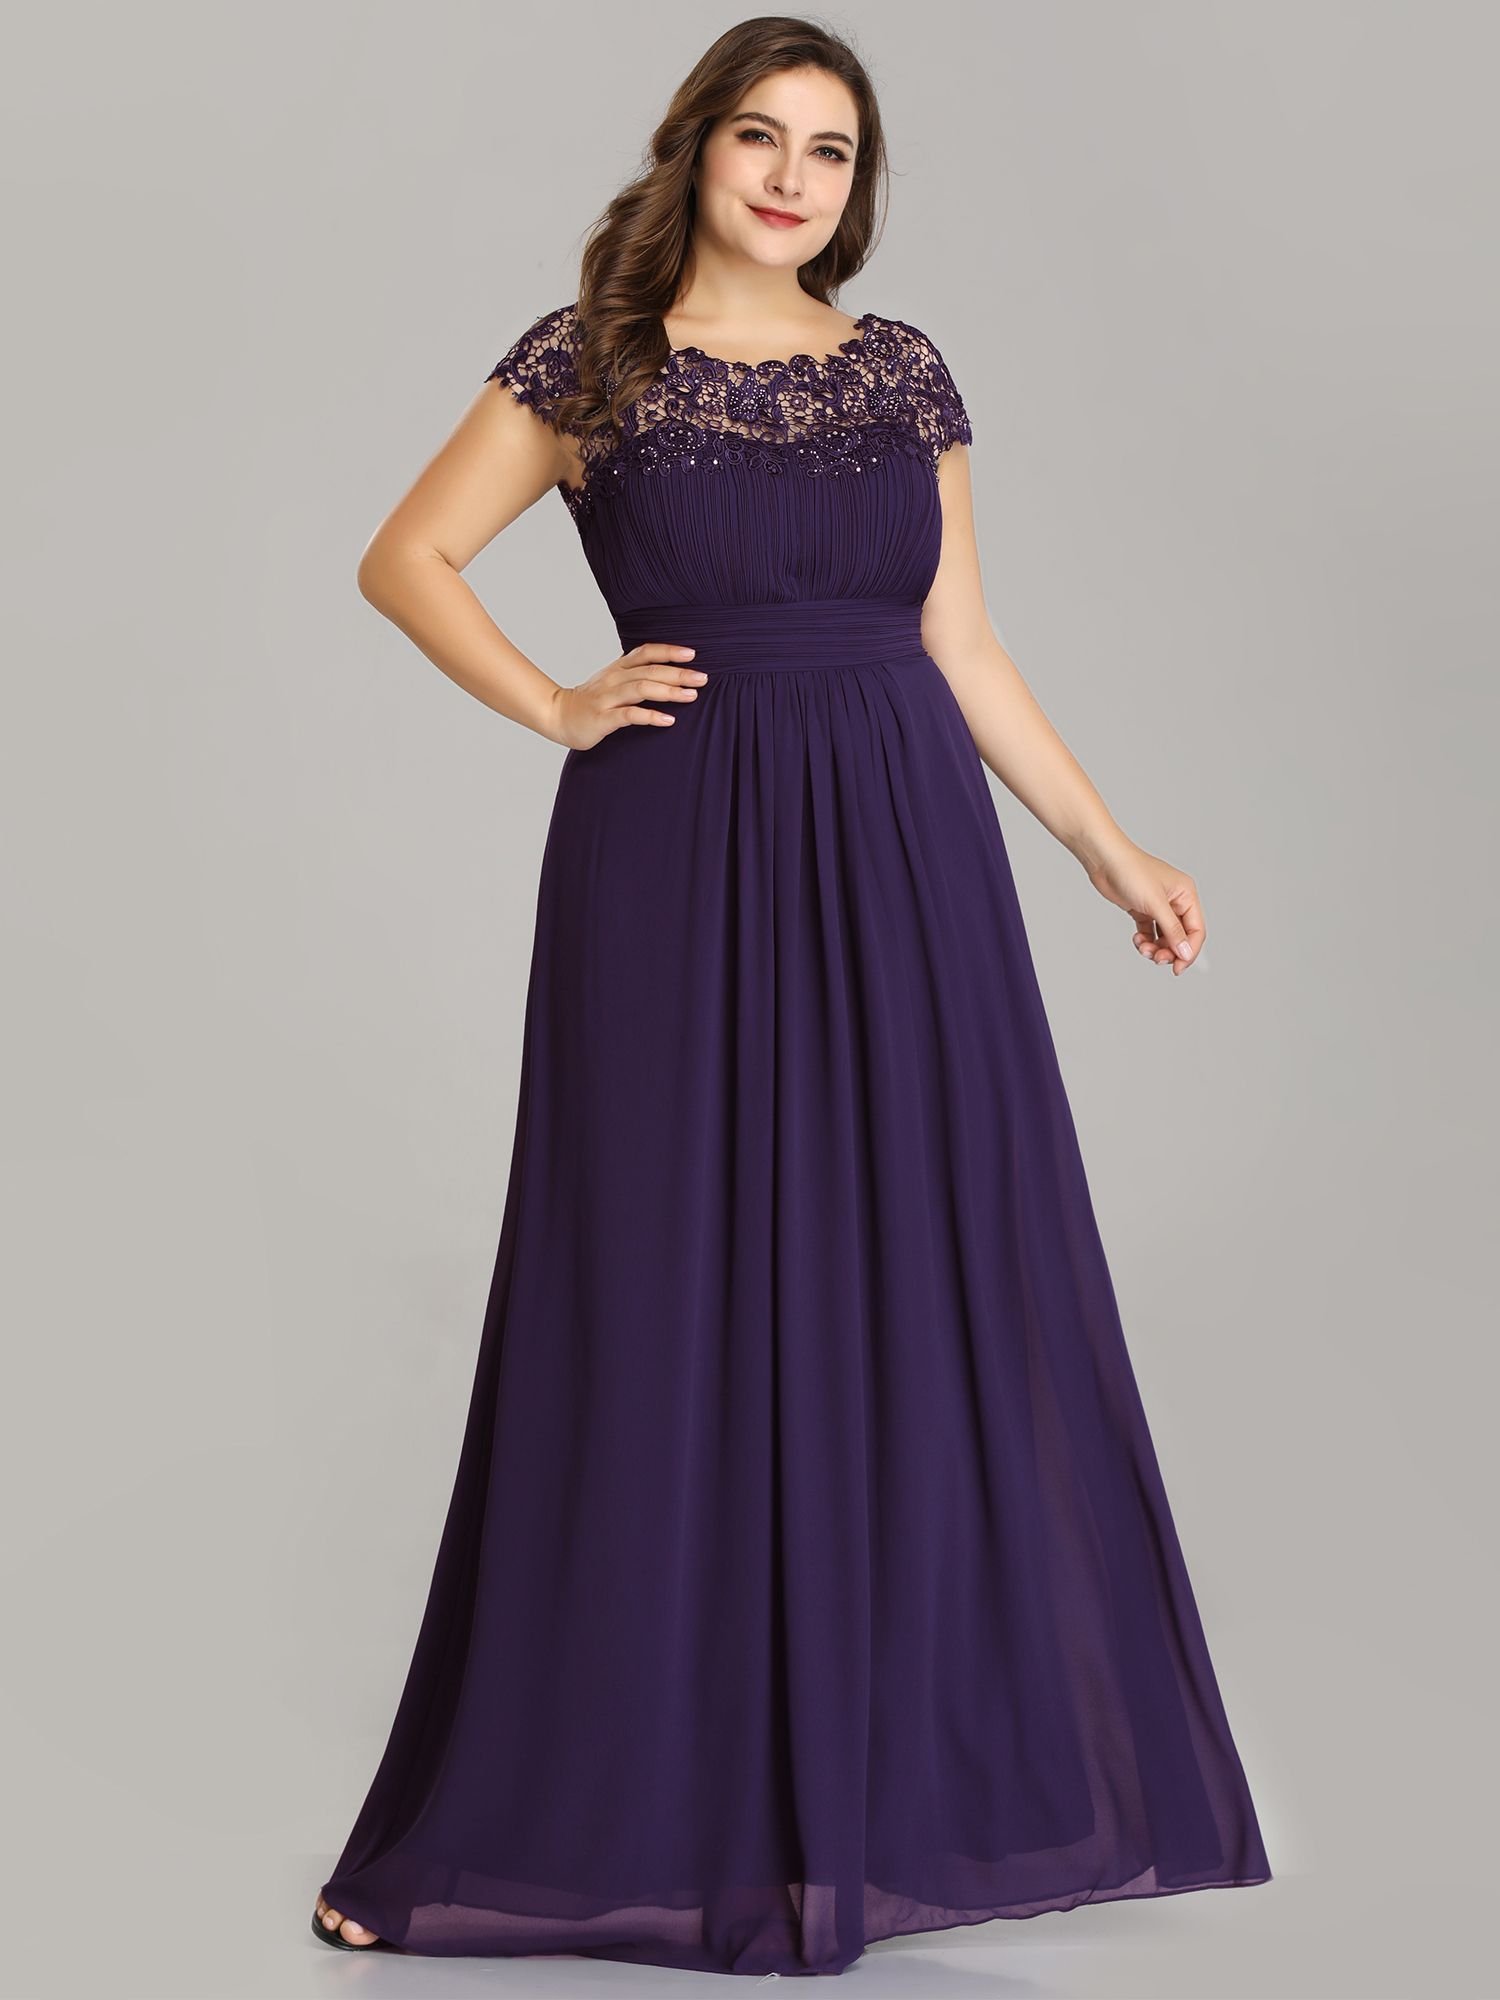 Ever Pretty Ever Pretty Womens Ruched Mother Of The Bride Dresses For Guest 99933 Dark Purple Us18 Walmart Com In 2021 Cute Lace Dresses Plus Size Evening Gown Chiffon Evening Dresses [ 2000 x 1500 Pixel ]